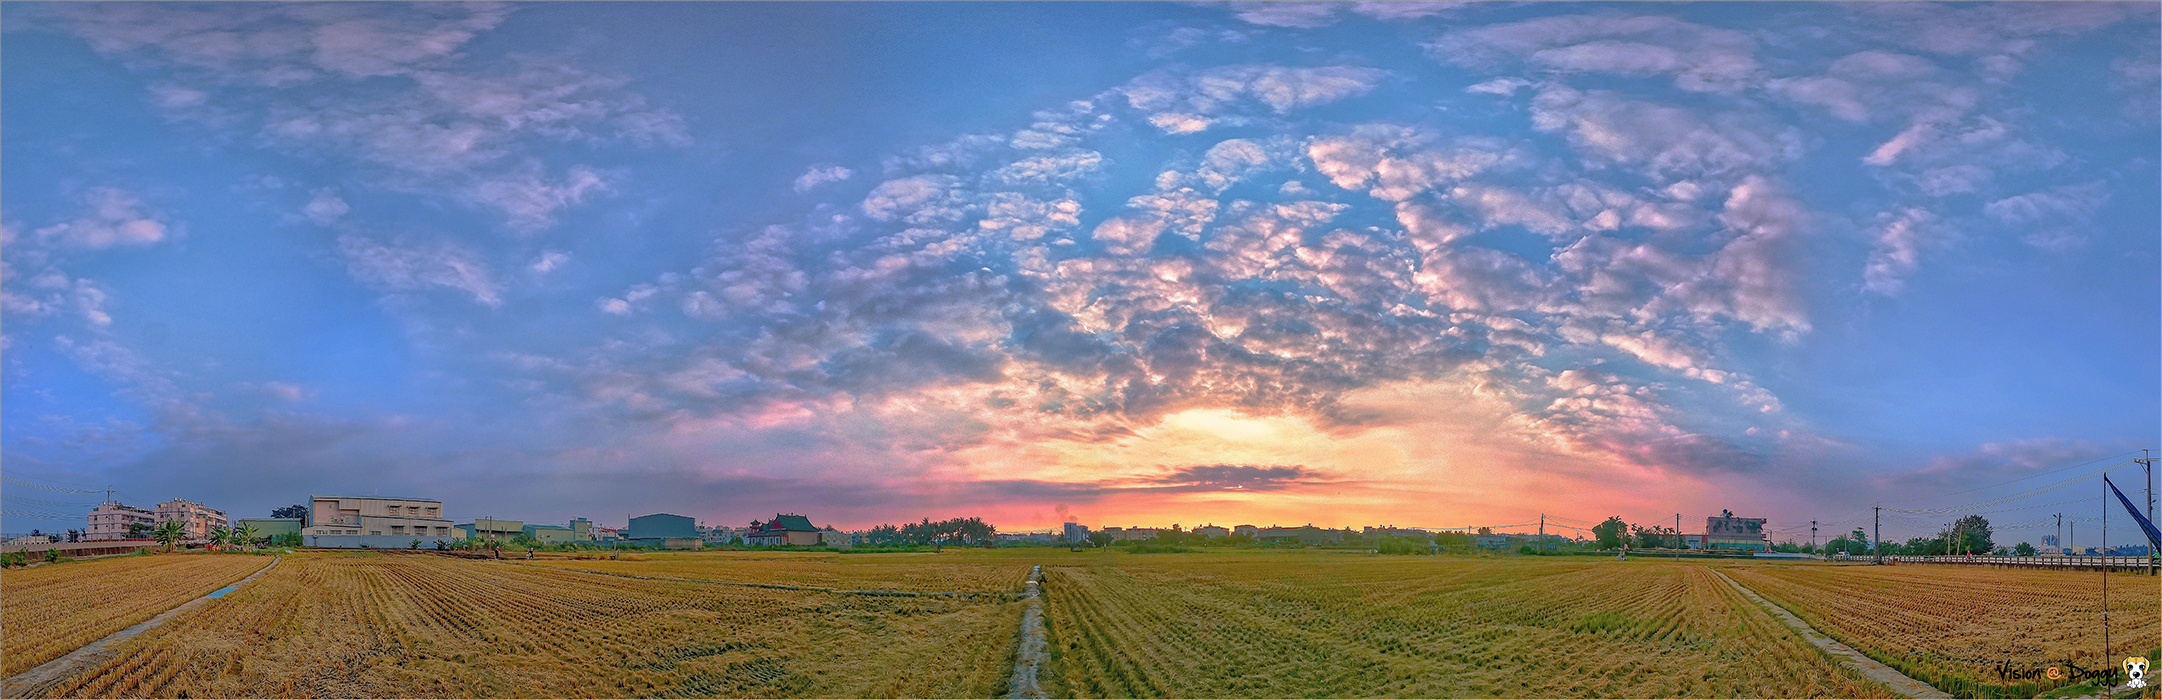 http://gnl.hunternet.com.tw/weider/web/wp-content/gallery/keliao/pic-20180522-01-sunset.png